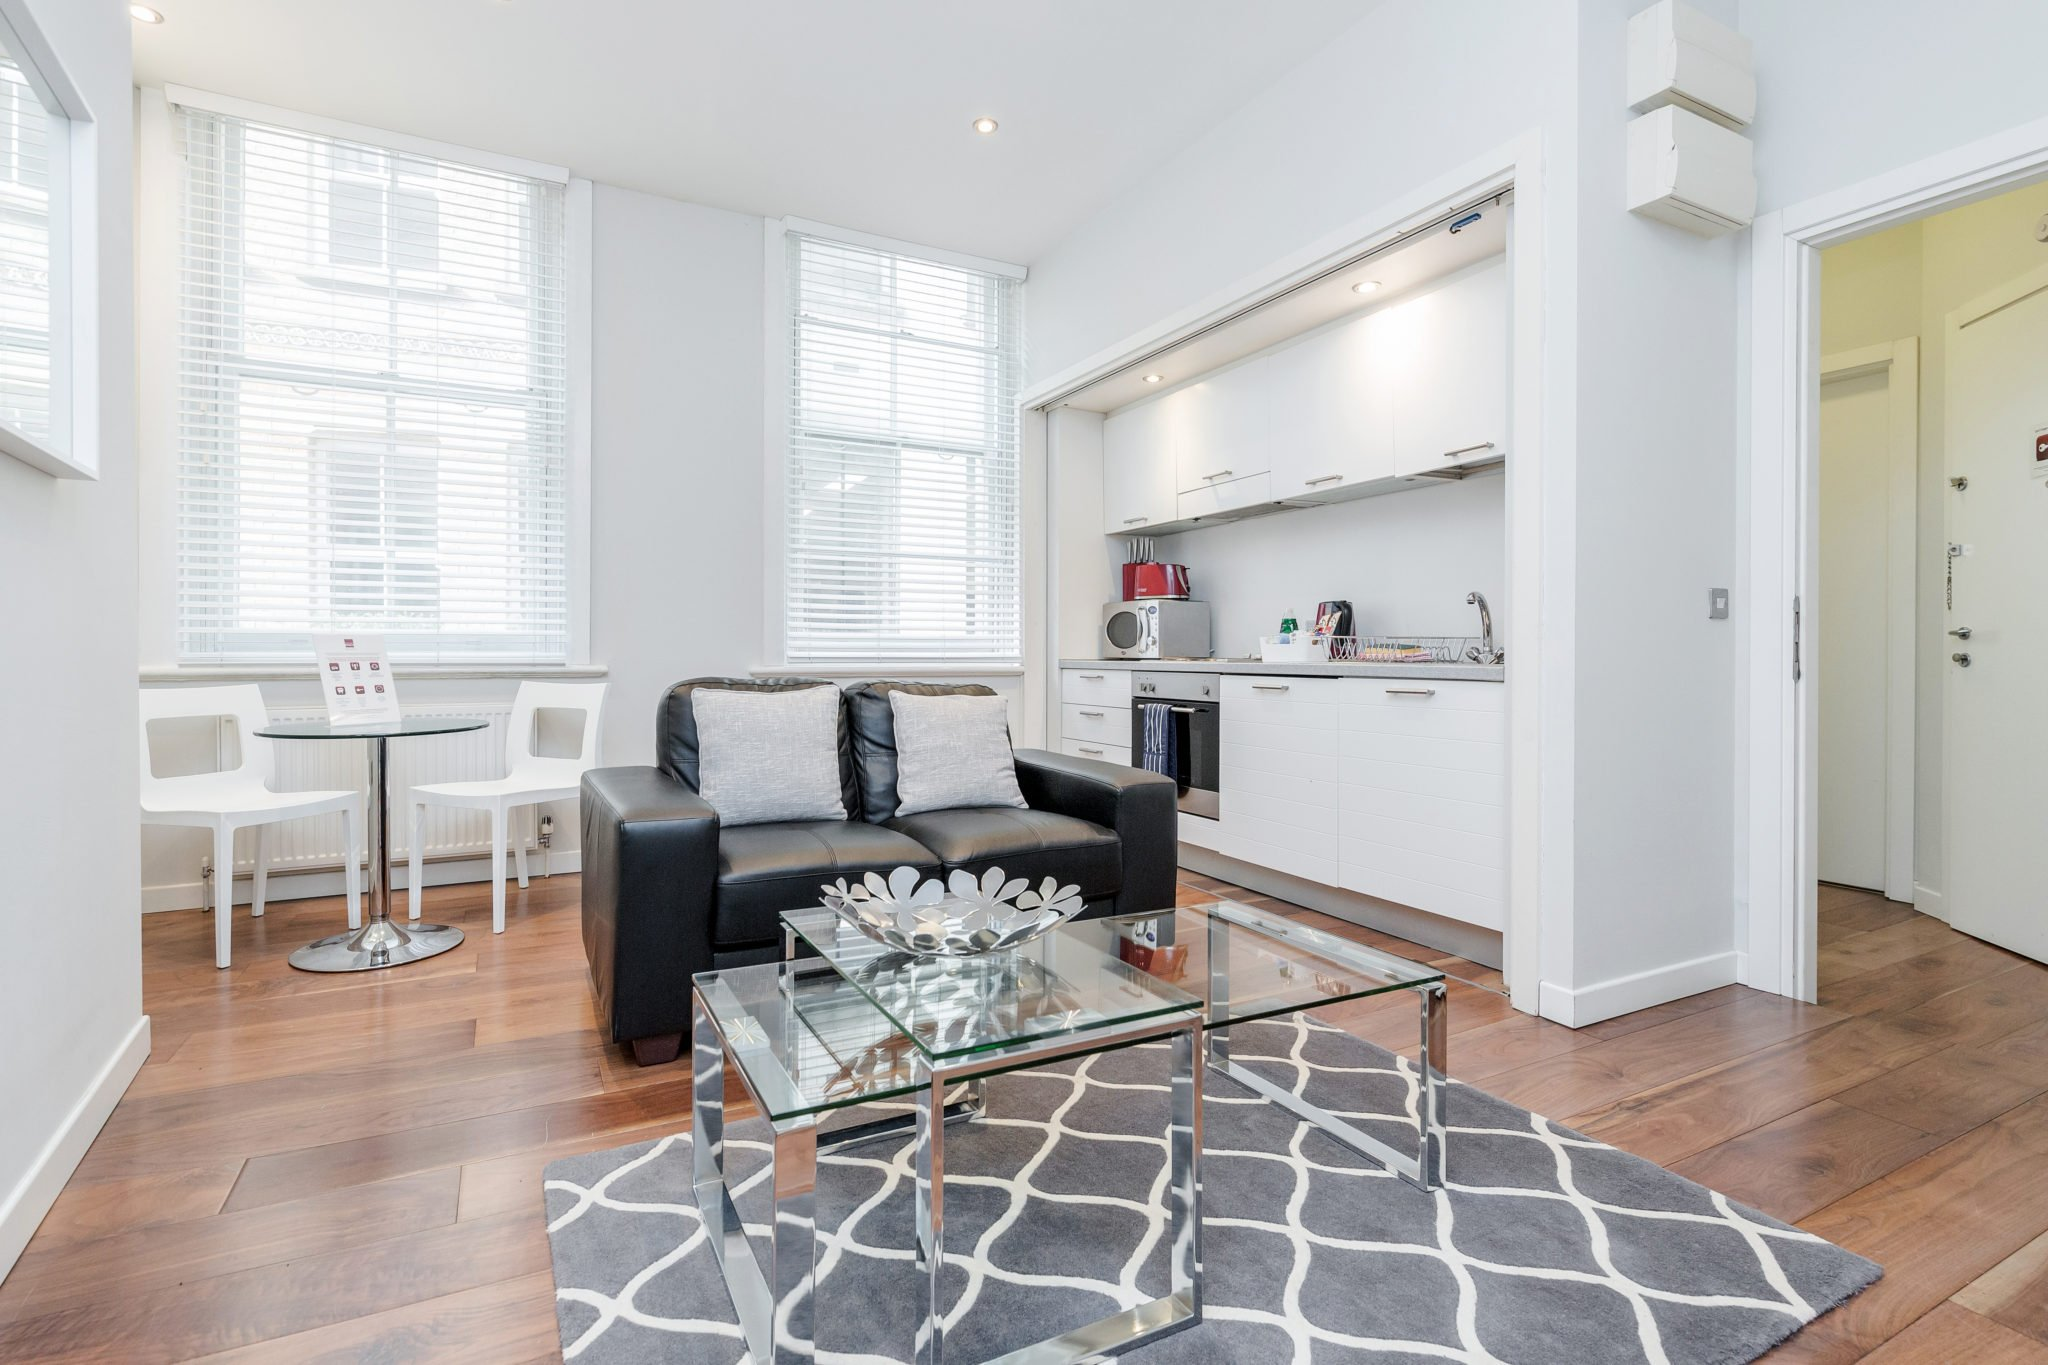 Chancery-Lane-Accommodation-London-|-Serviced-Apartments-Central-London-|-Short-Let-Apartments-Near-Farringdon-|-All-Bills-incl---Best-Rates!-BOOK-NOW